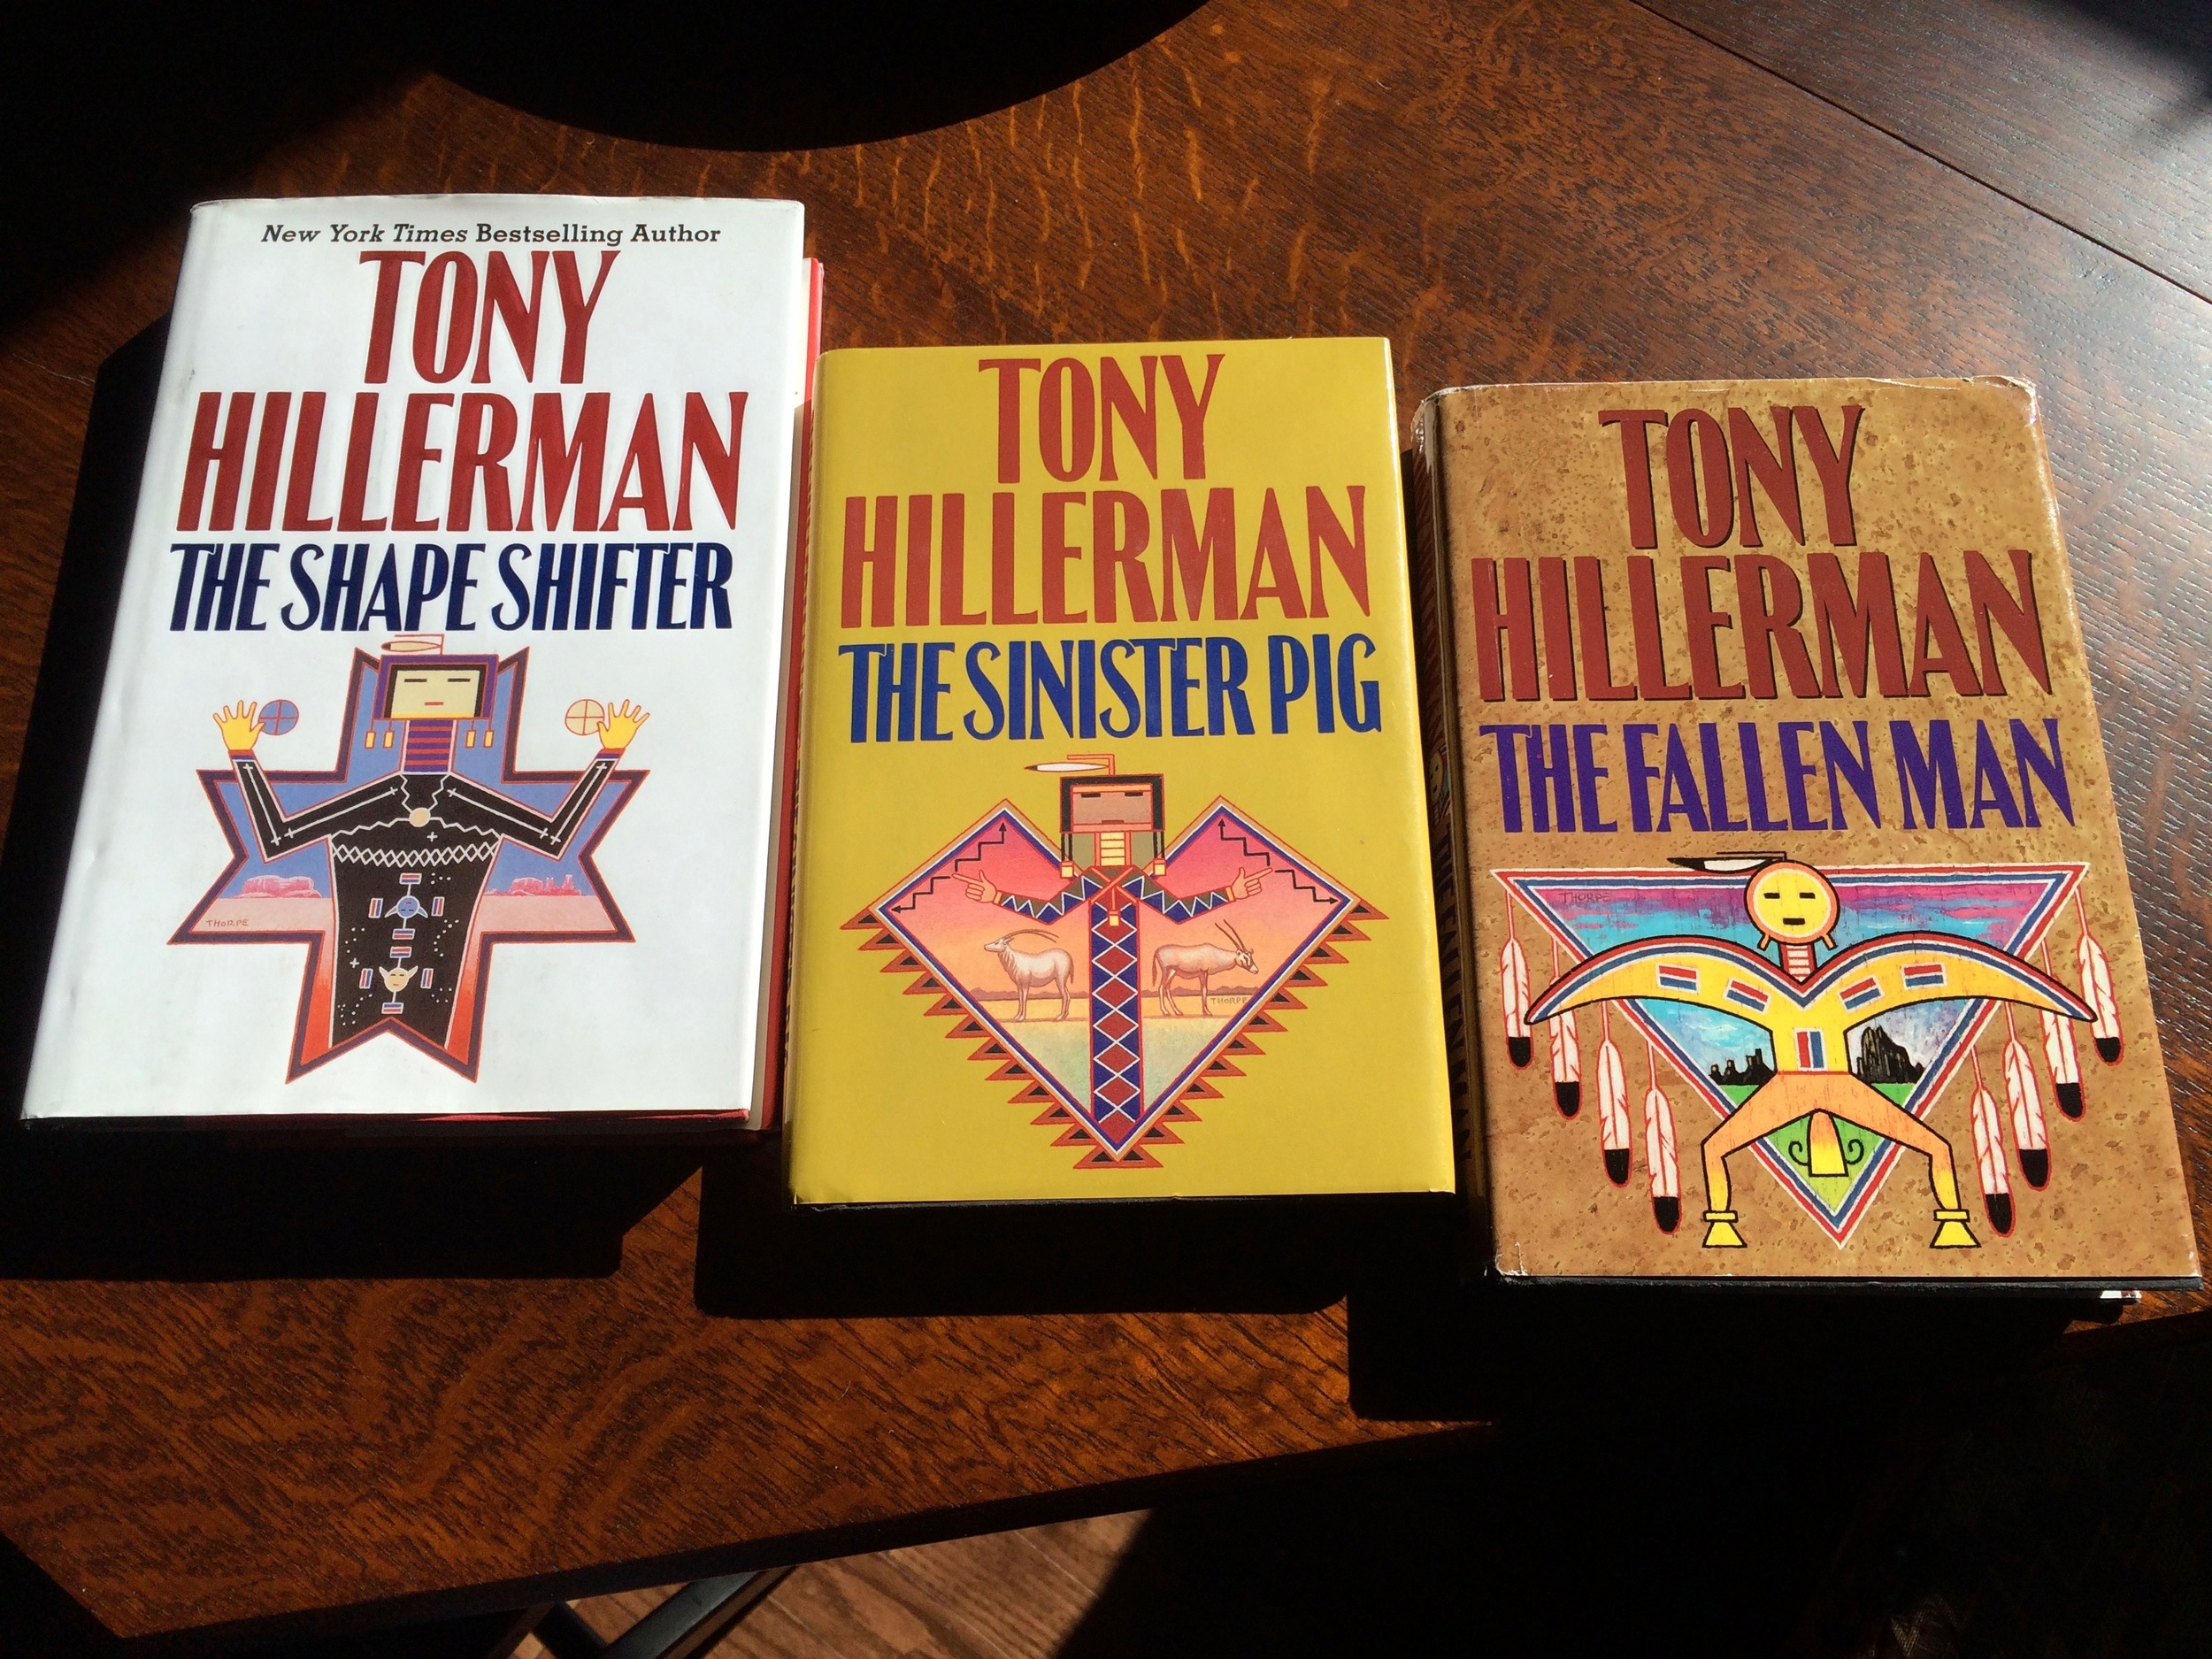 My thrift store loot: a few more Tony Hillerman books to add to my collection. They have the coolest covers!